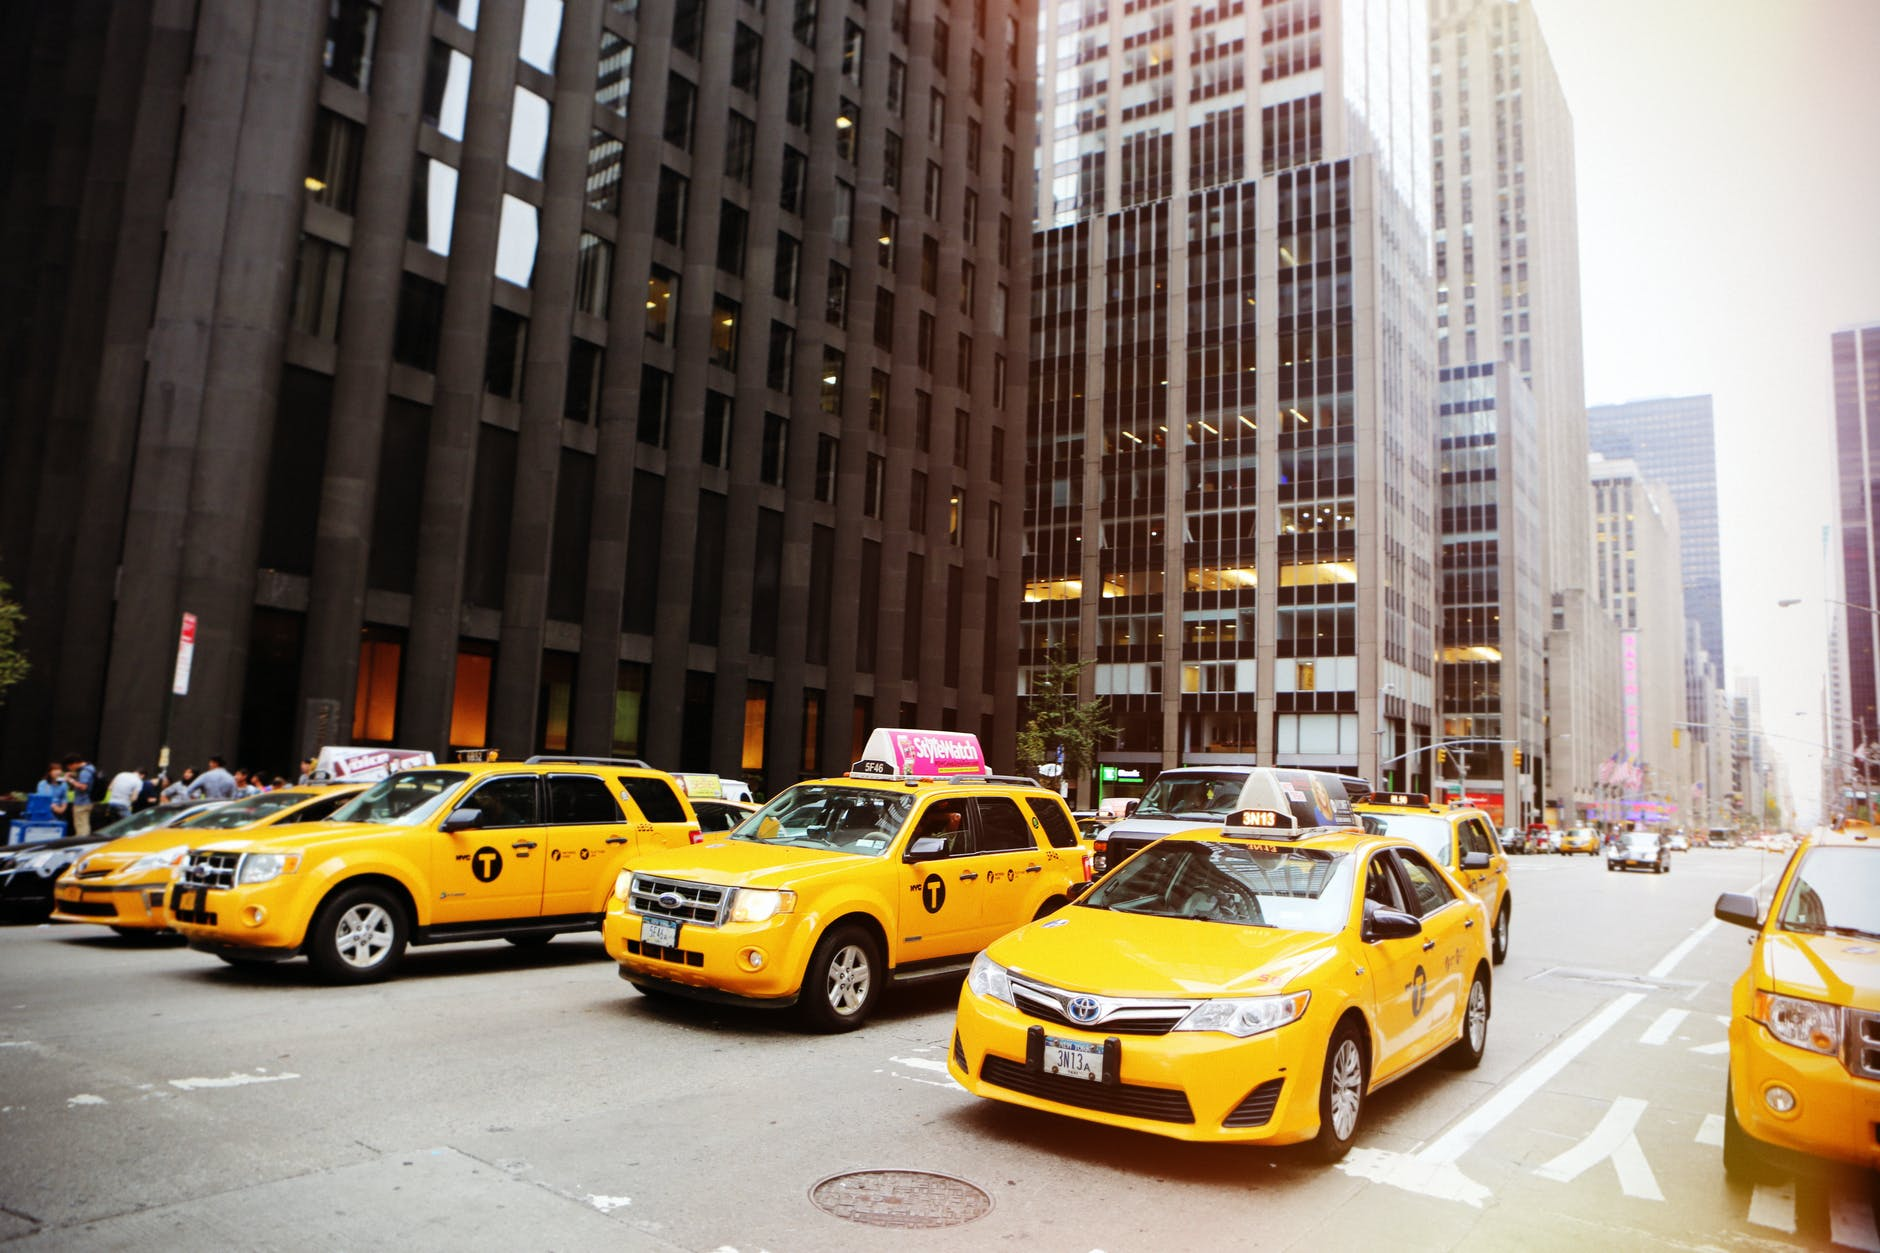 Challenges Faced by Taxi Fleet Owners